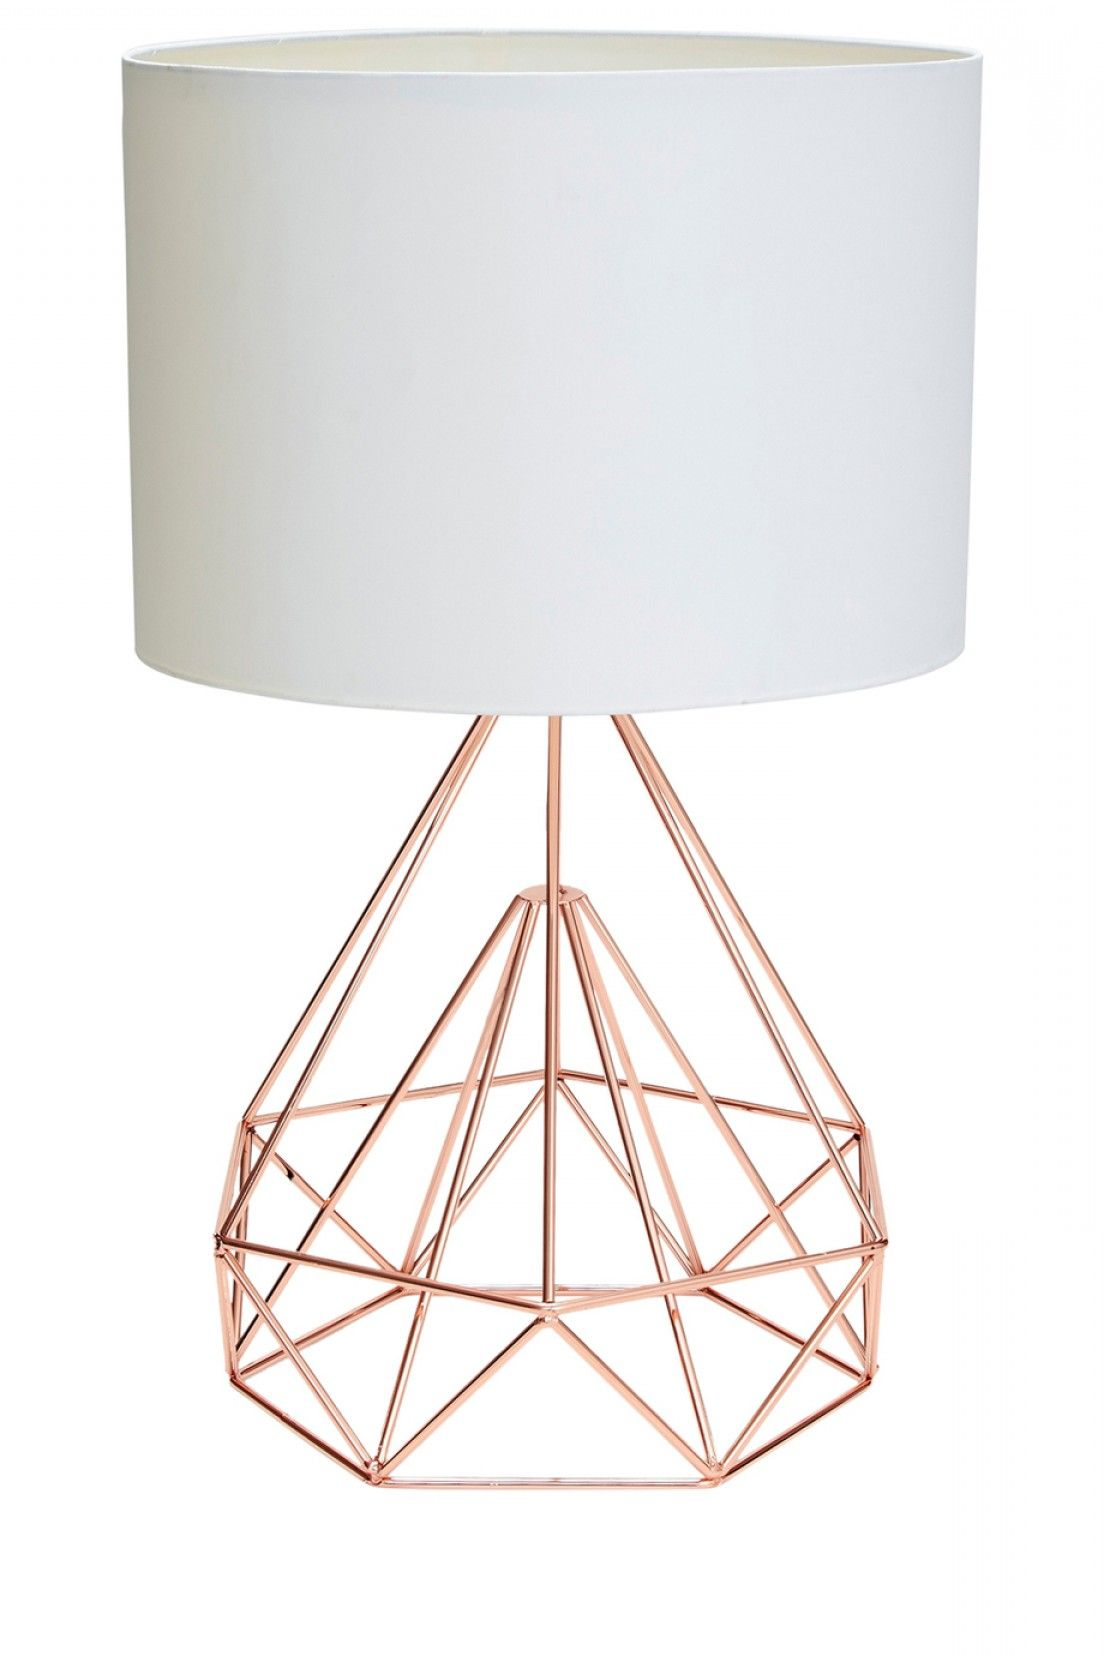 Salt and Pepper Chicago rose gold wire table lamp with ...